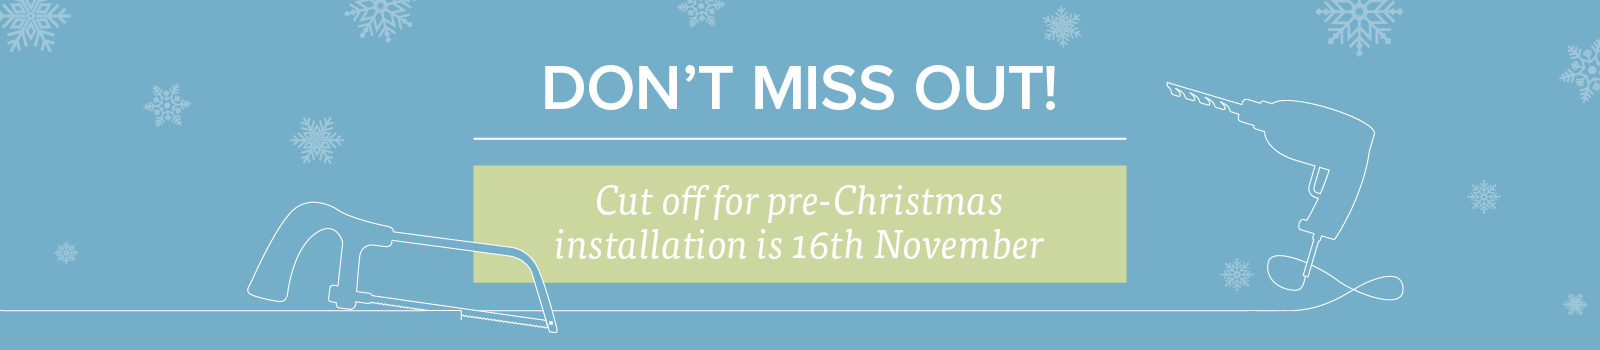 Cut off for pre christmas installation 16th November